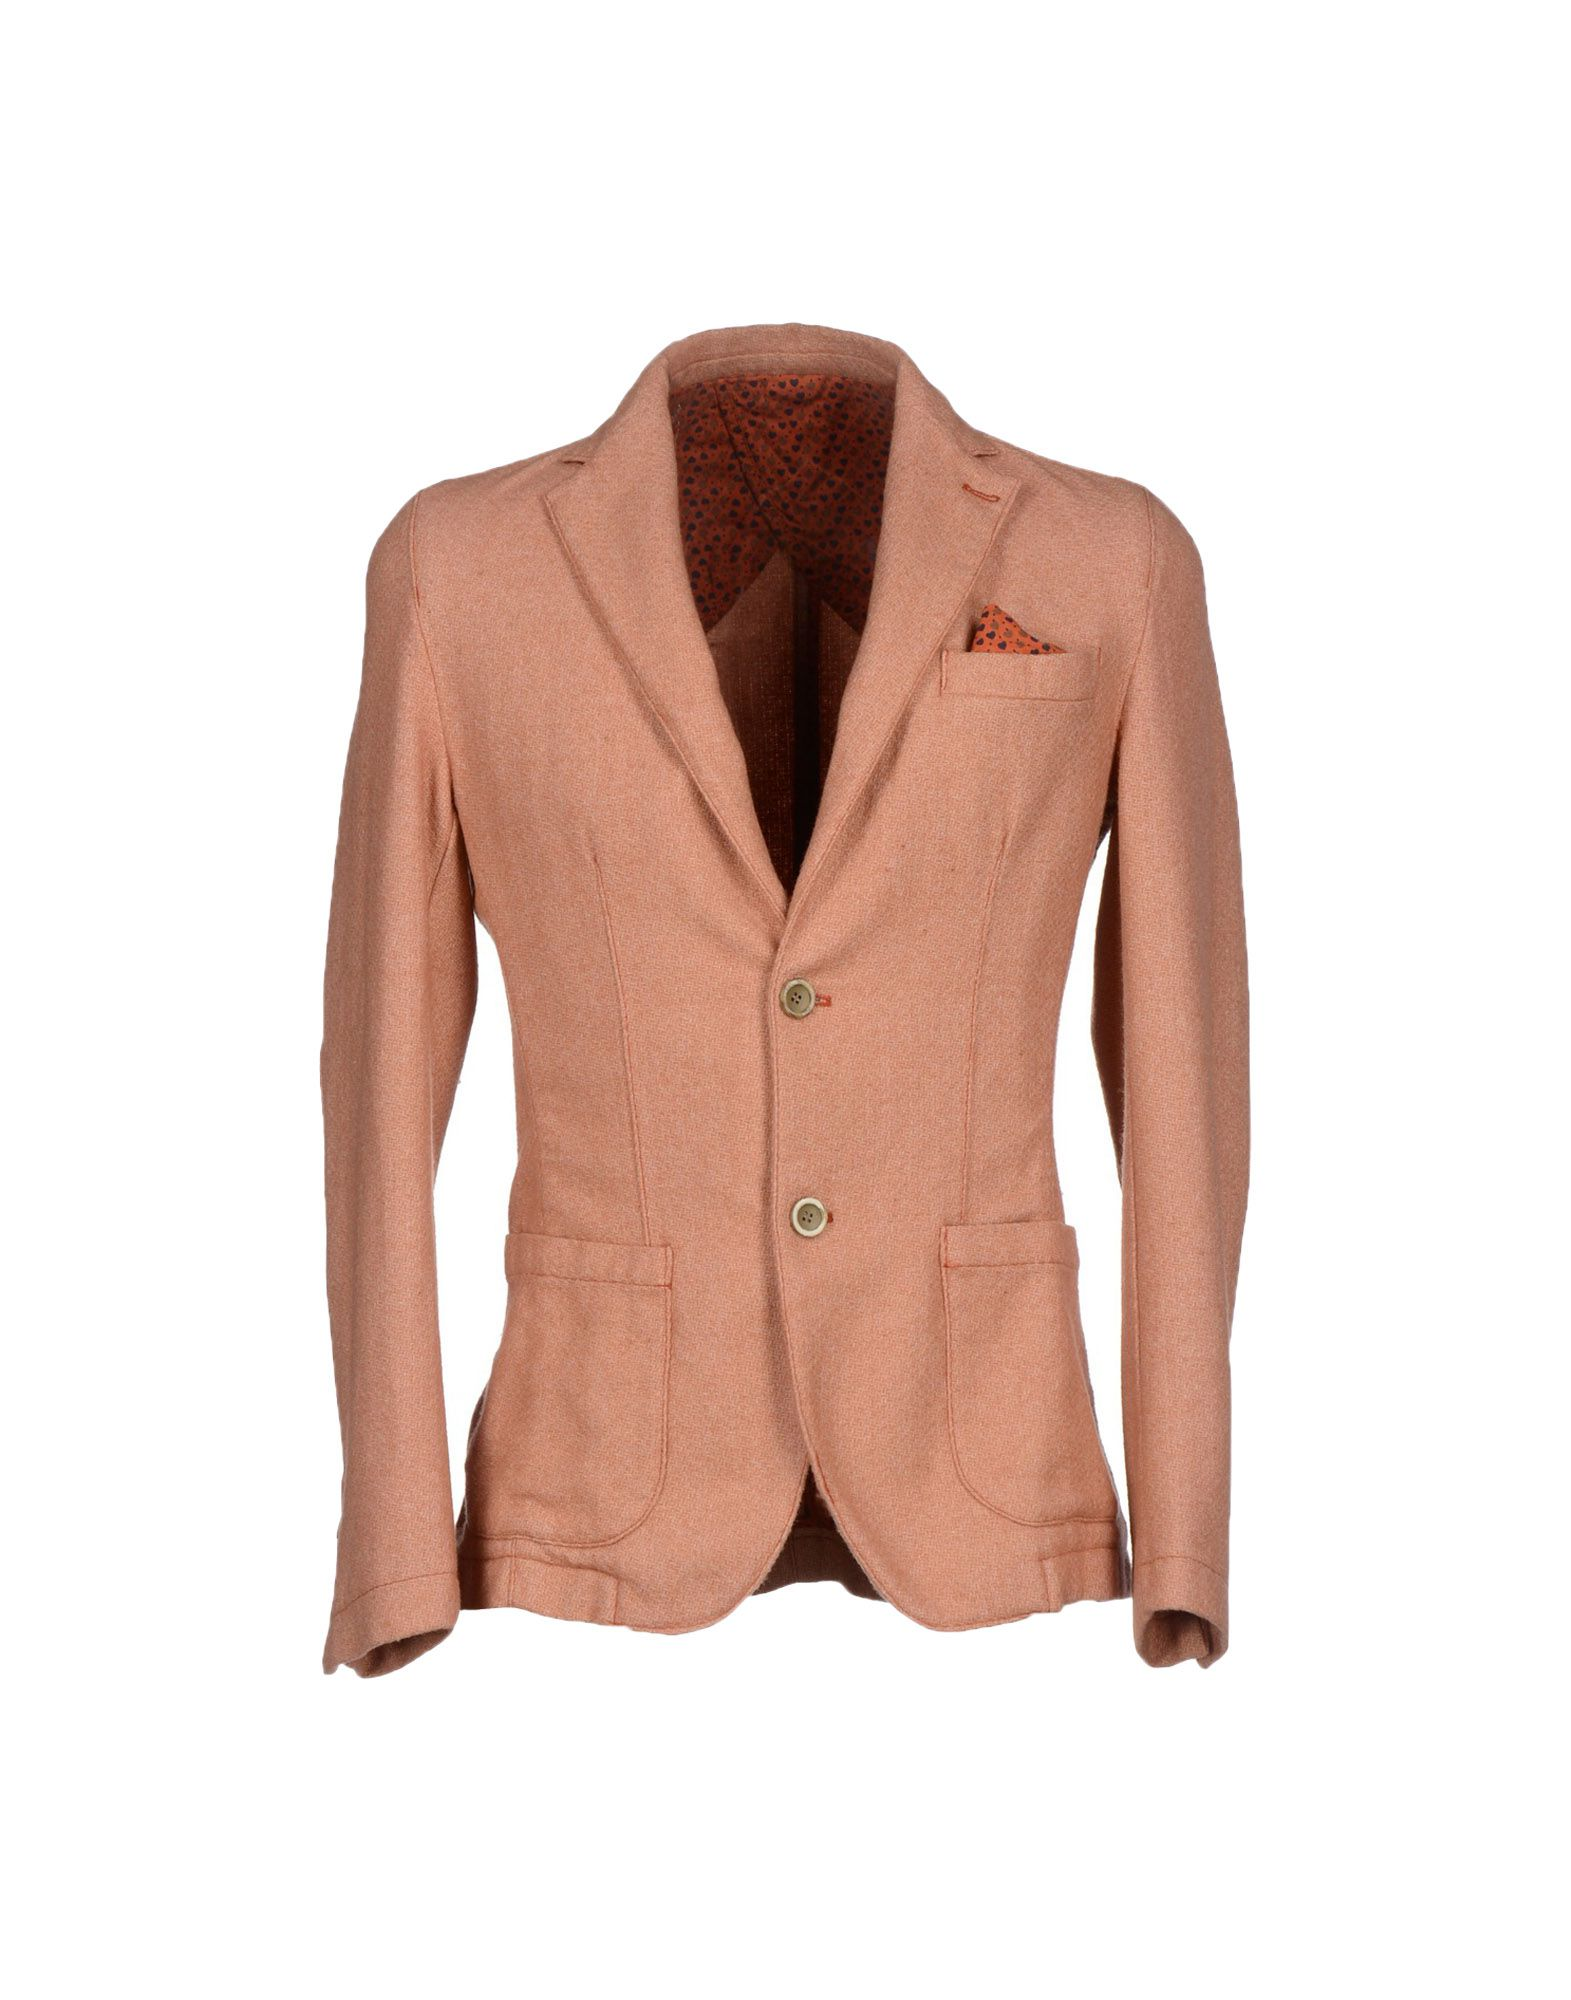 DAMA Blazers in Pale Pink